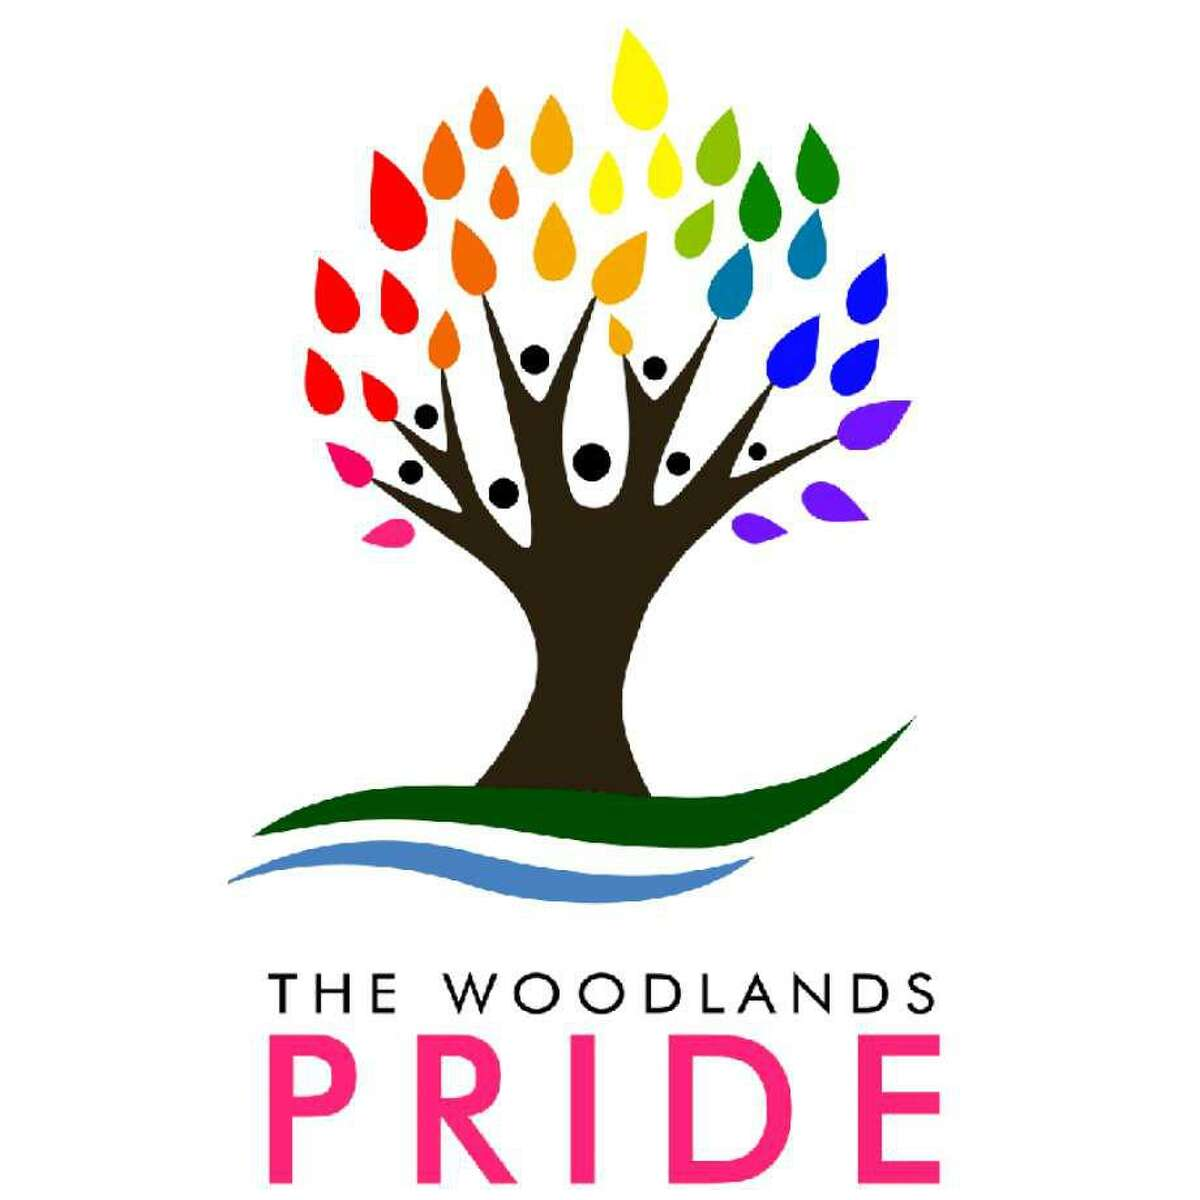 The Woodlands Pride, formed in April 2018, aims to build bridges between the LGBTQIA community and others throughout Montgomery County. The annual Pride event normally hosted in September was canceled in 2020 due to the coronavirus pandemic, but organizers are already working to make the 2021 event a success.